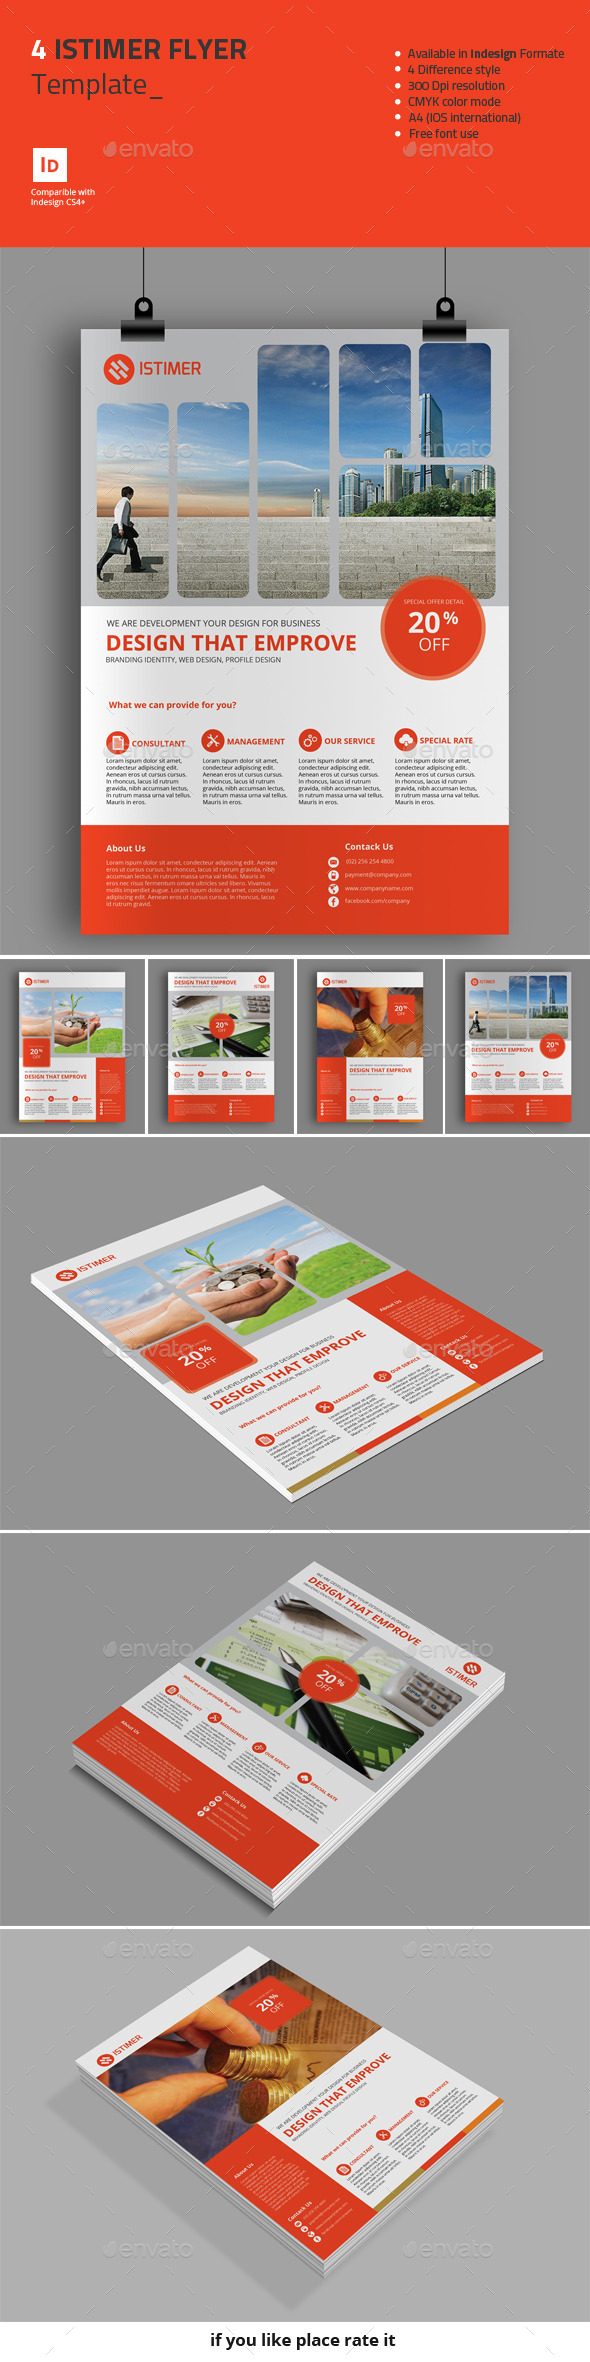 4 Istimer Flyer Template - Corporate Flyers